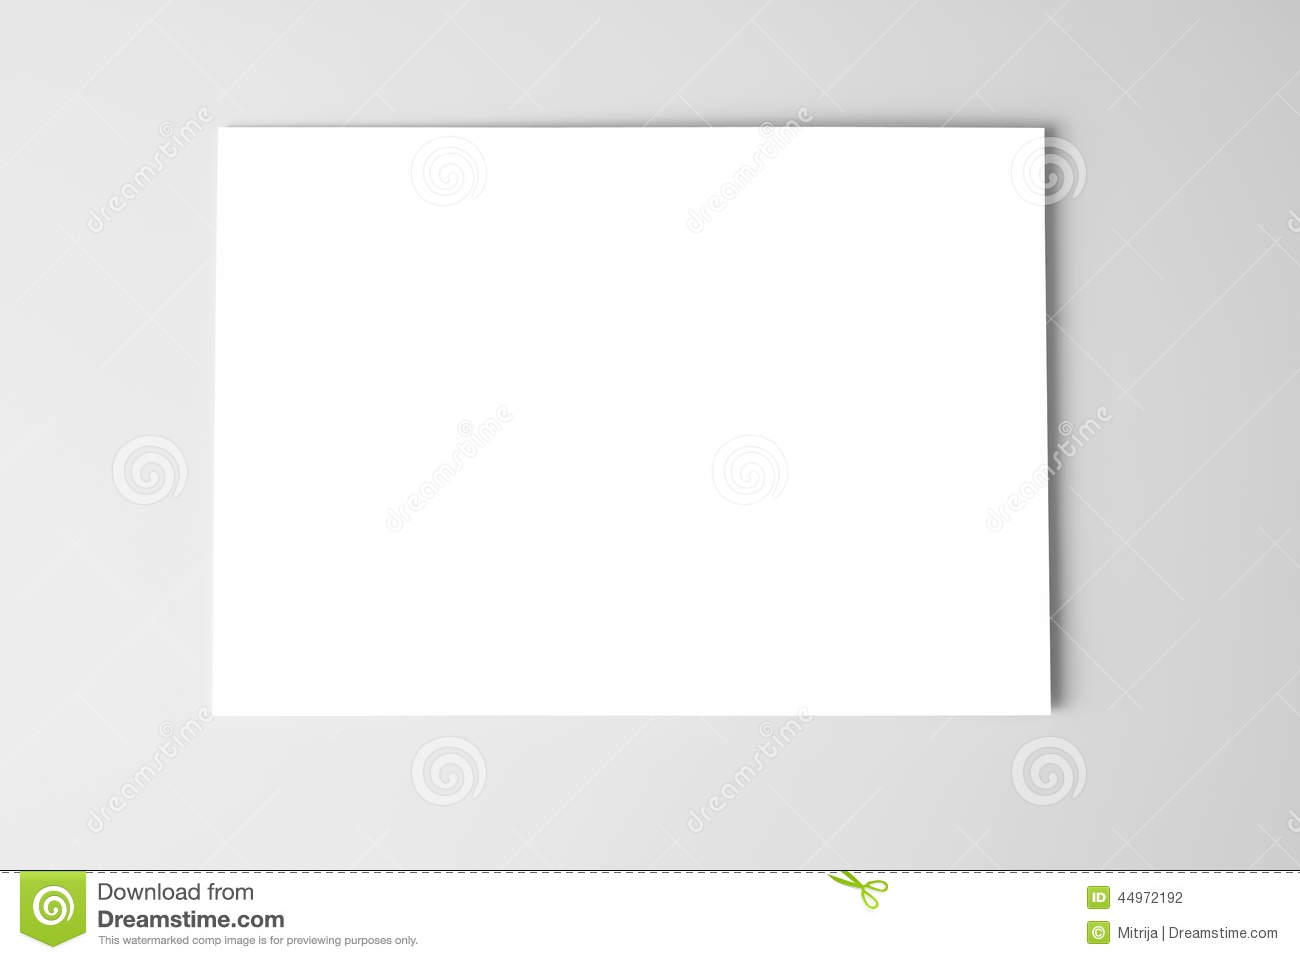 Blank business card or sheet of paper stock illustration download blank business card or sheet of paper stock illustration illustration of business paper colourmoves